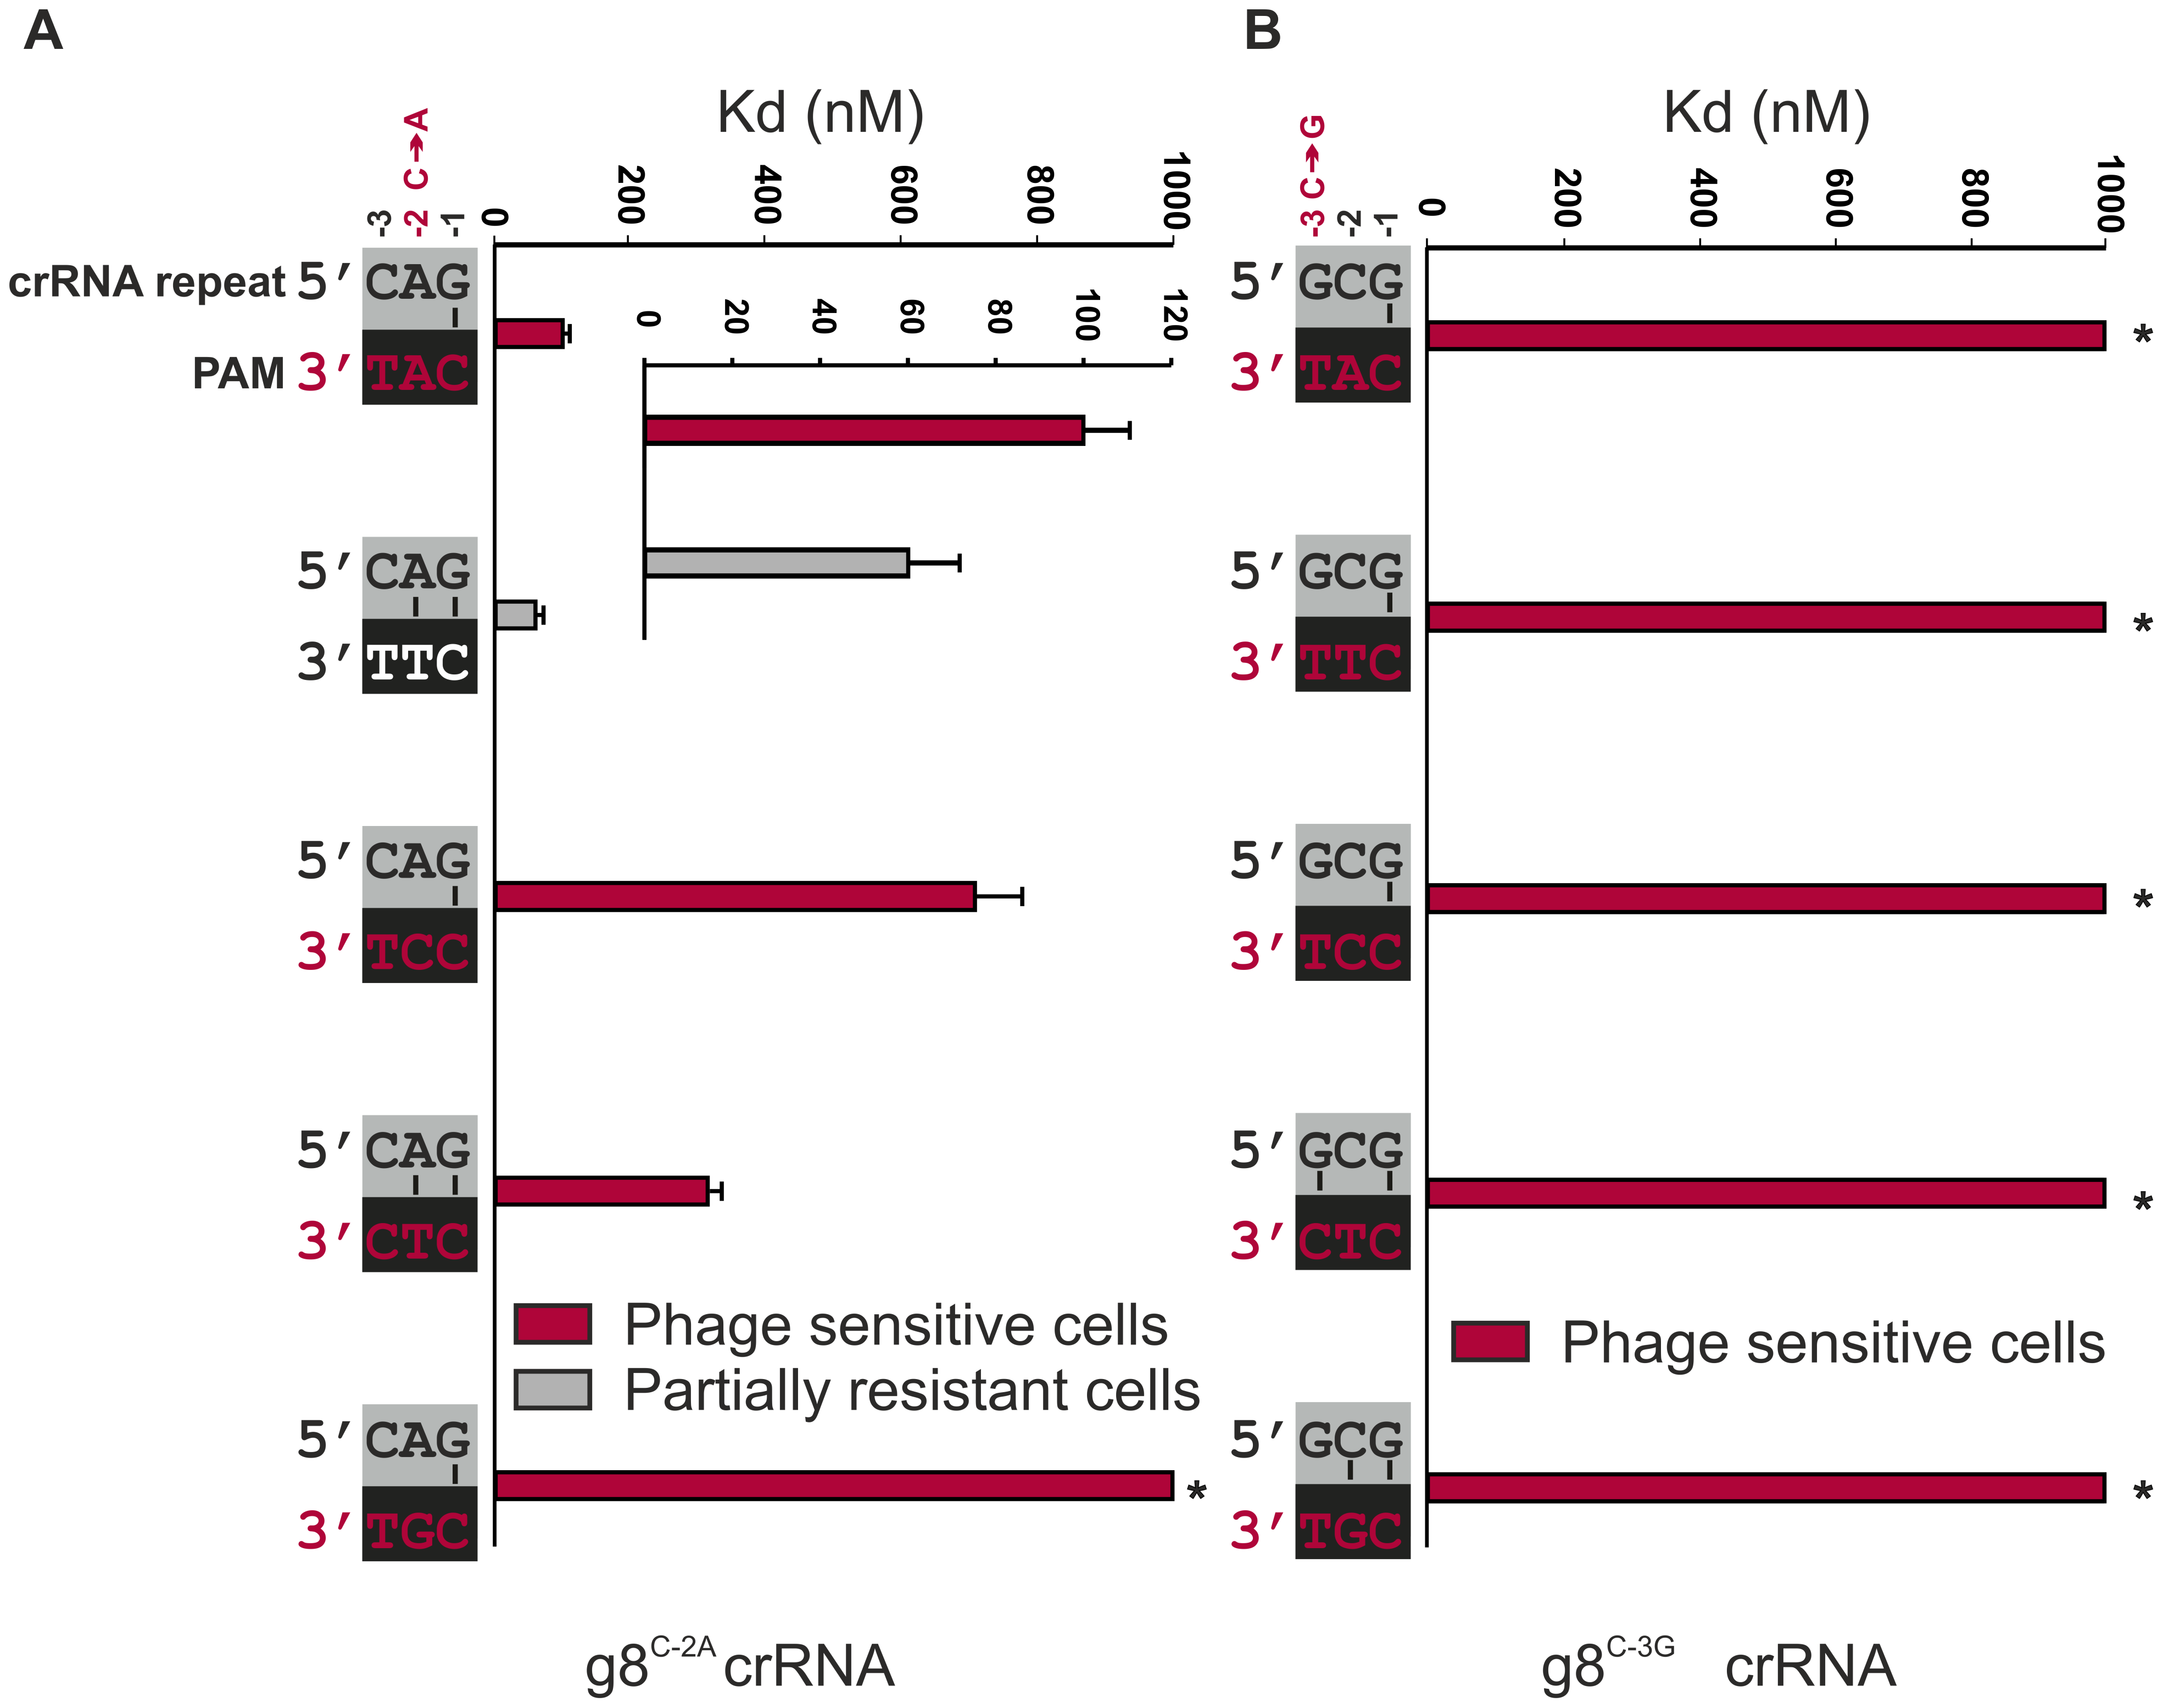 Base pairing at the −2 and −3 positions does not interfere with CRISPR-immunity.